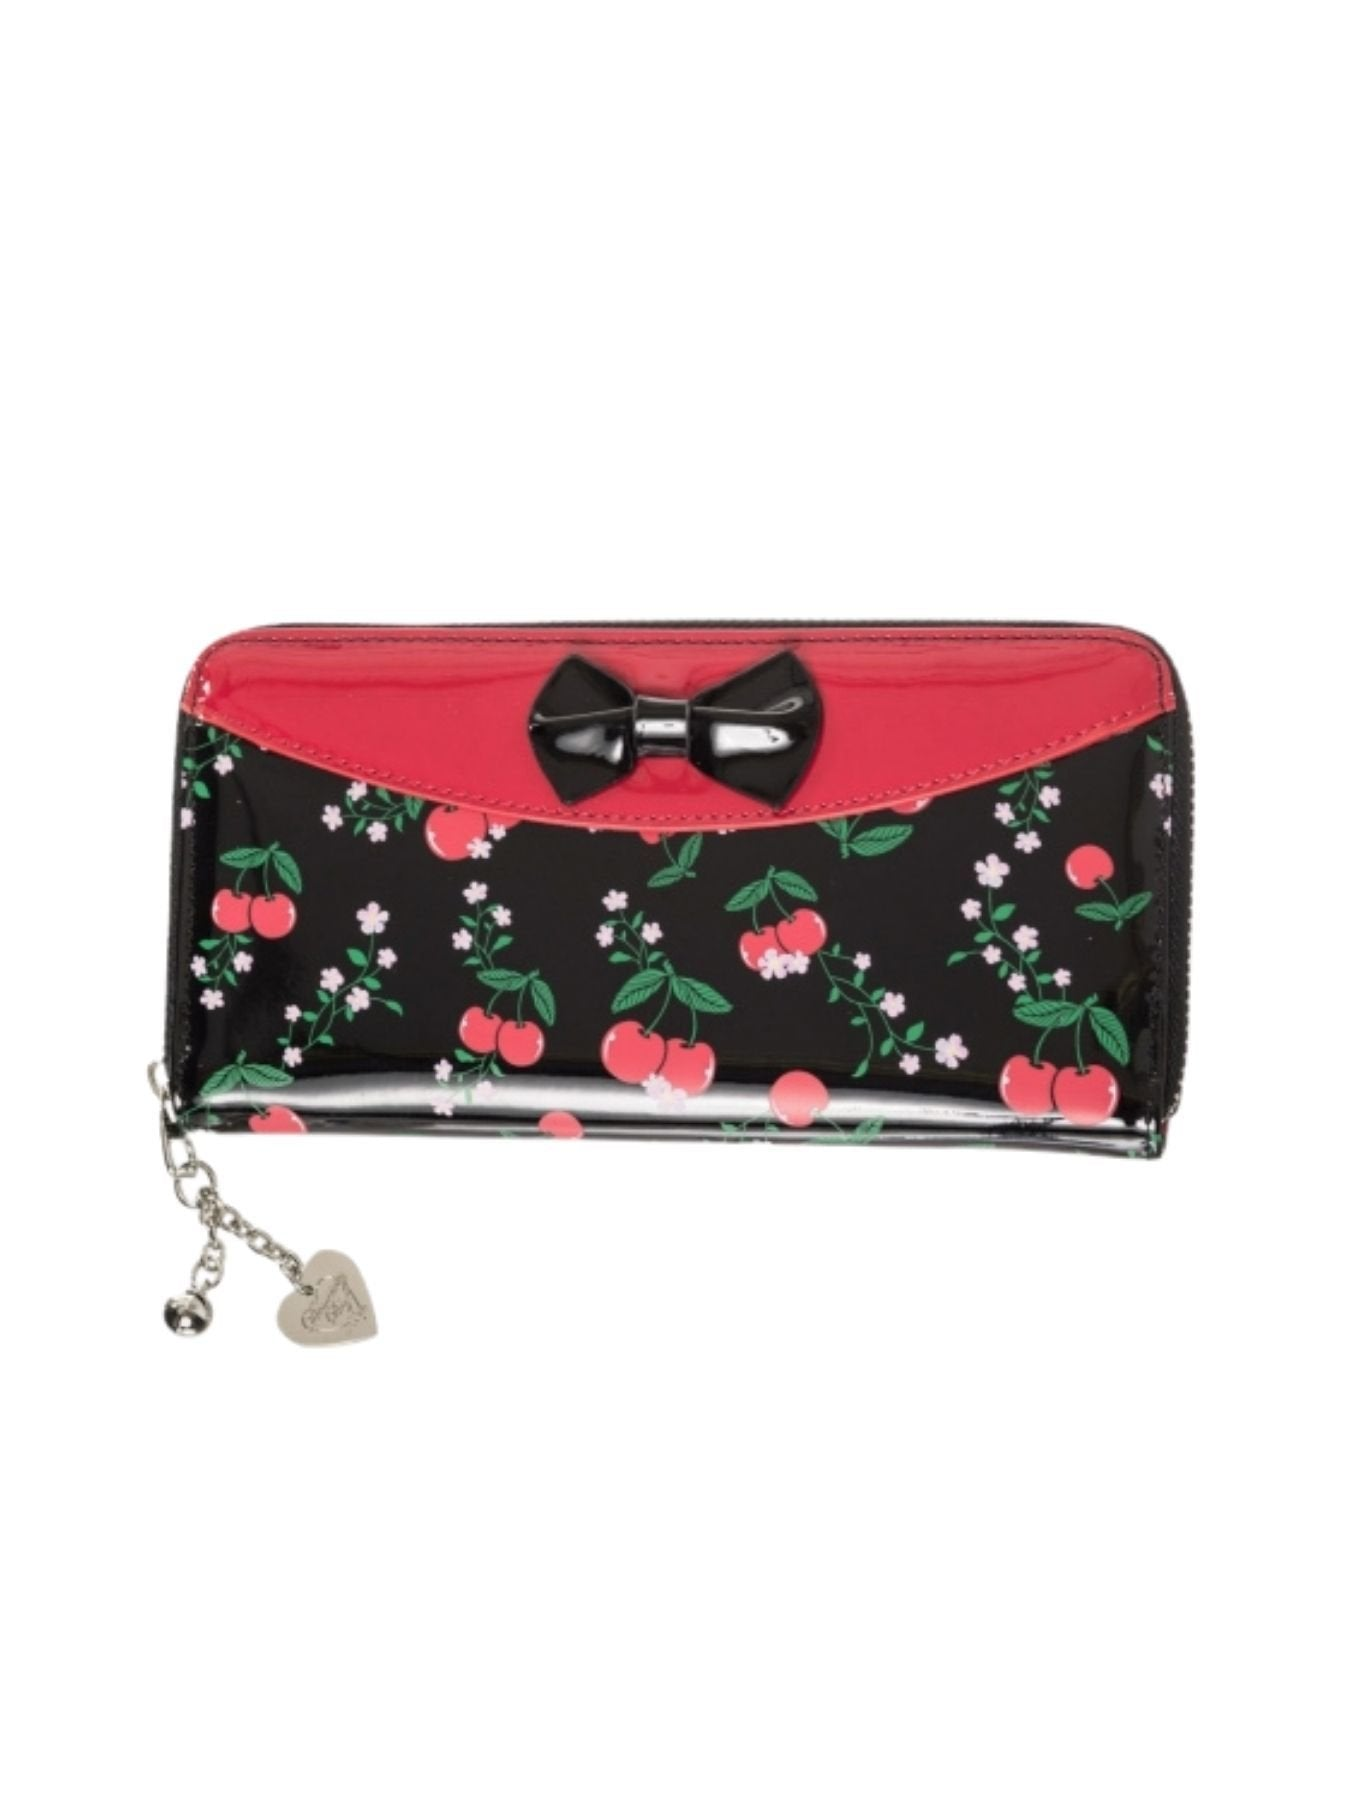 Banned New Romantics Wallet - Bohemian Finds